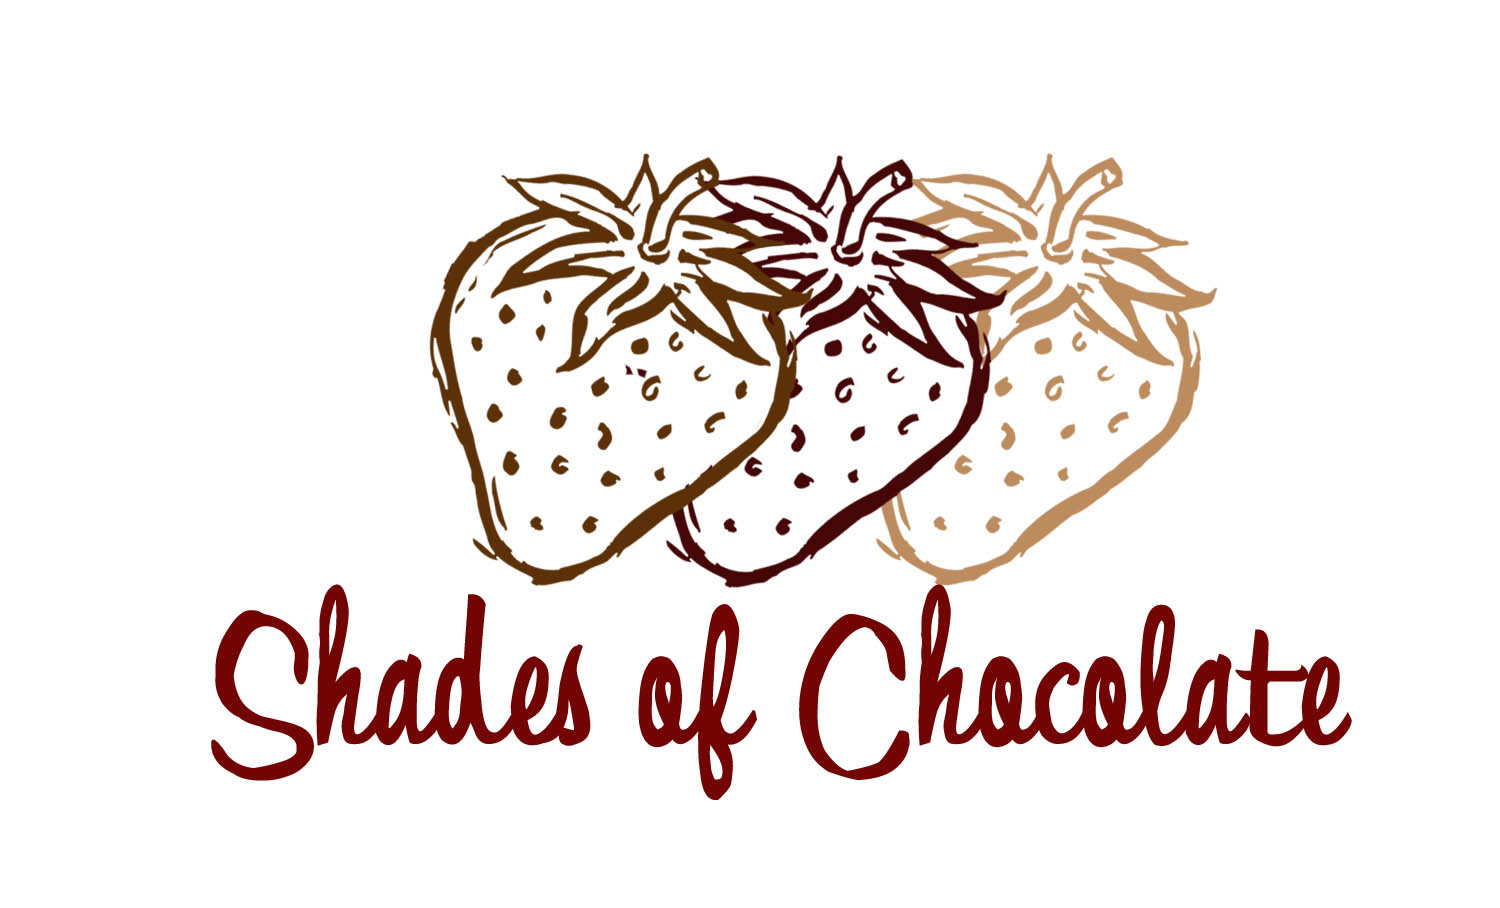 Shades of Chocolate